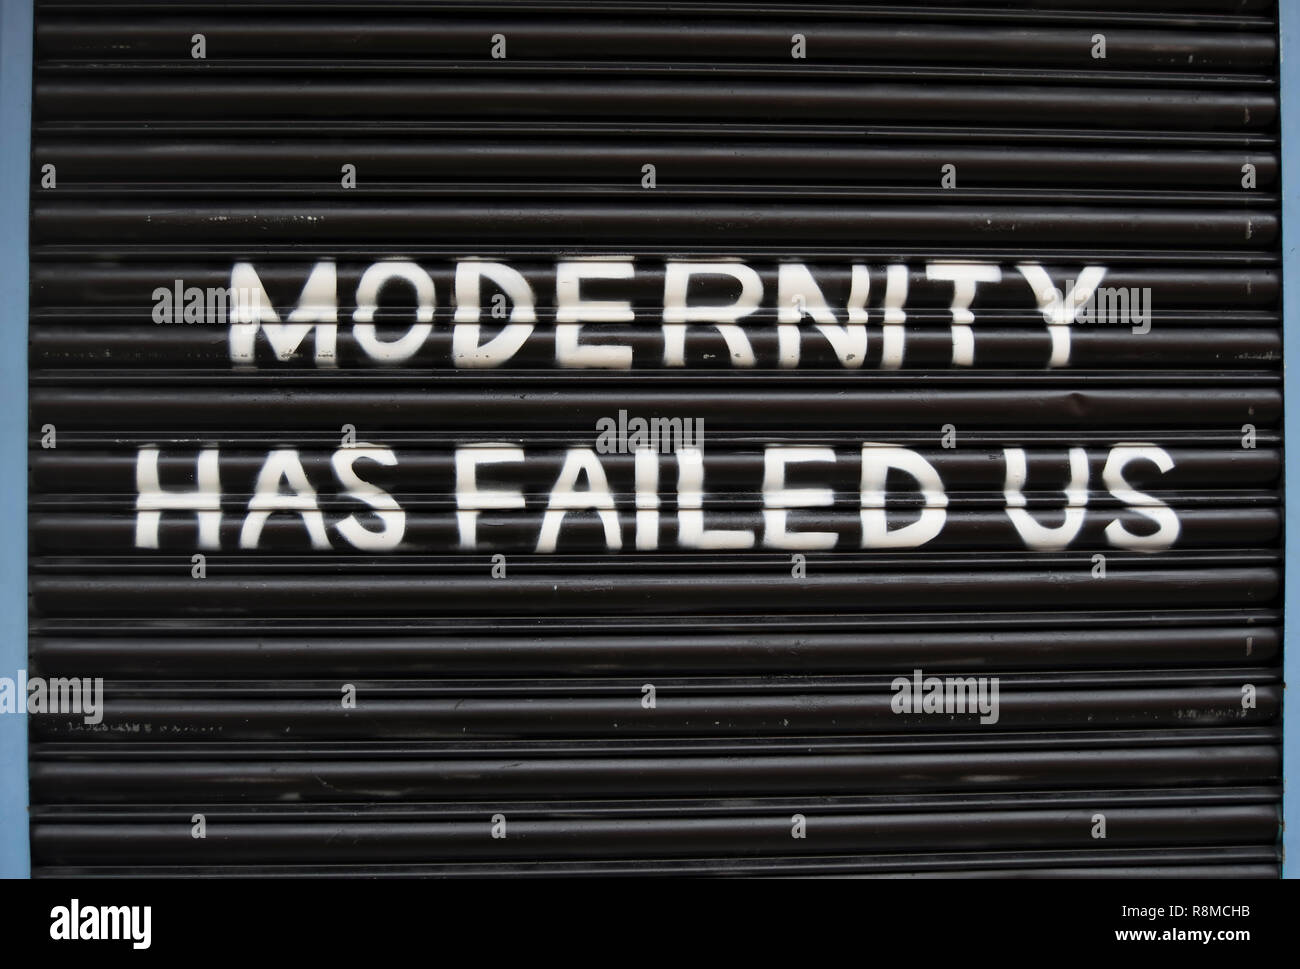 modernity has failed us, lyric from the band the 1975 used on the shutters of  banquet records, a record shop in kingston upon thames, surrey, england - Stock Image